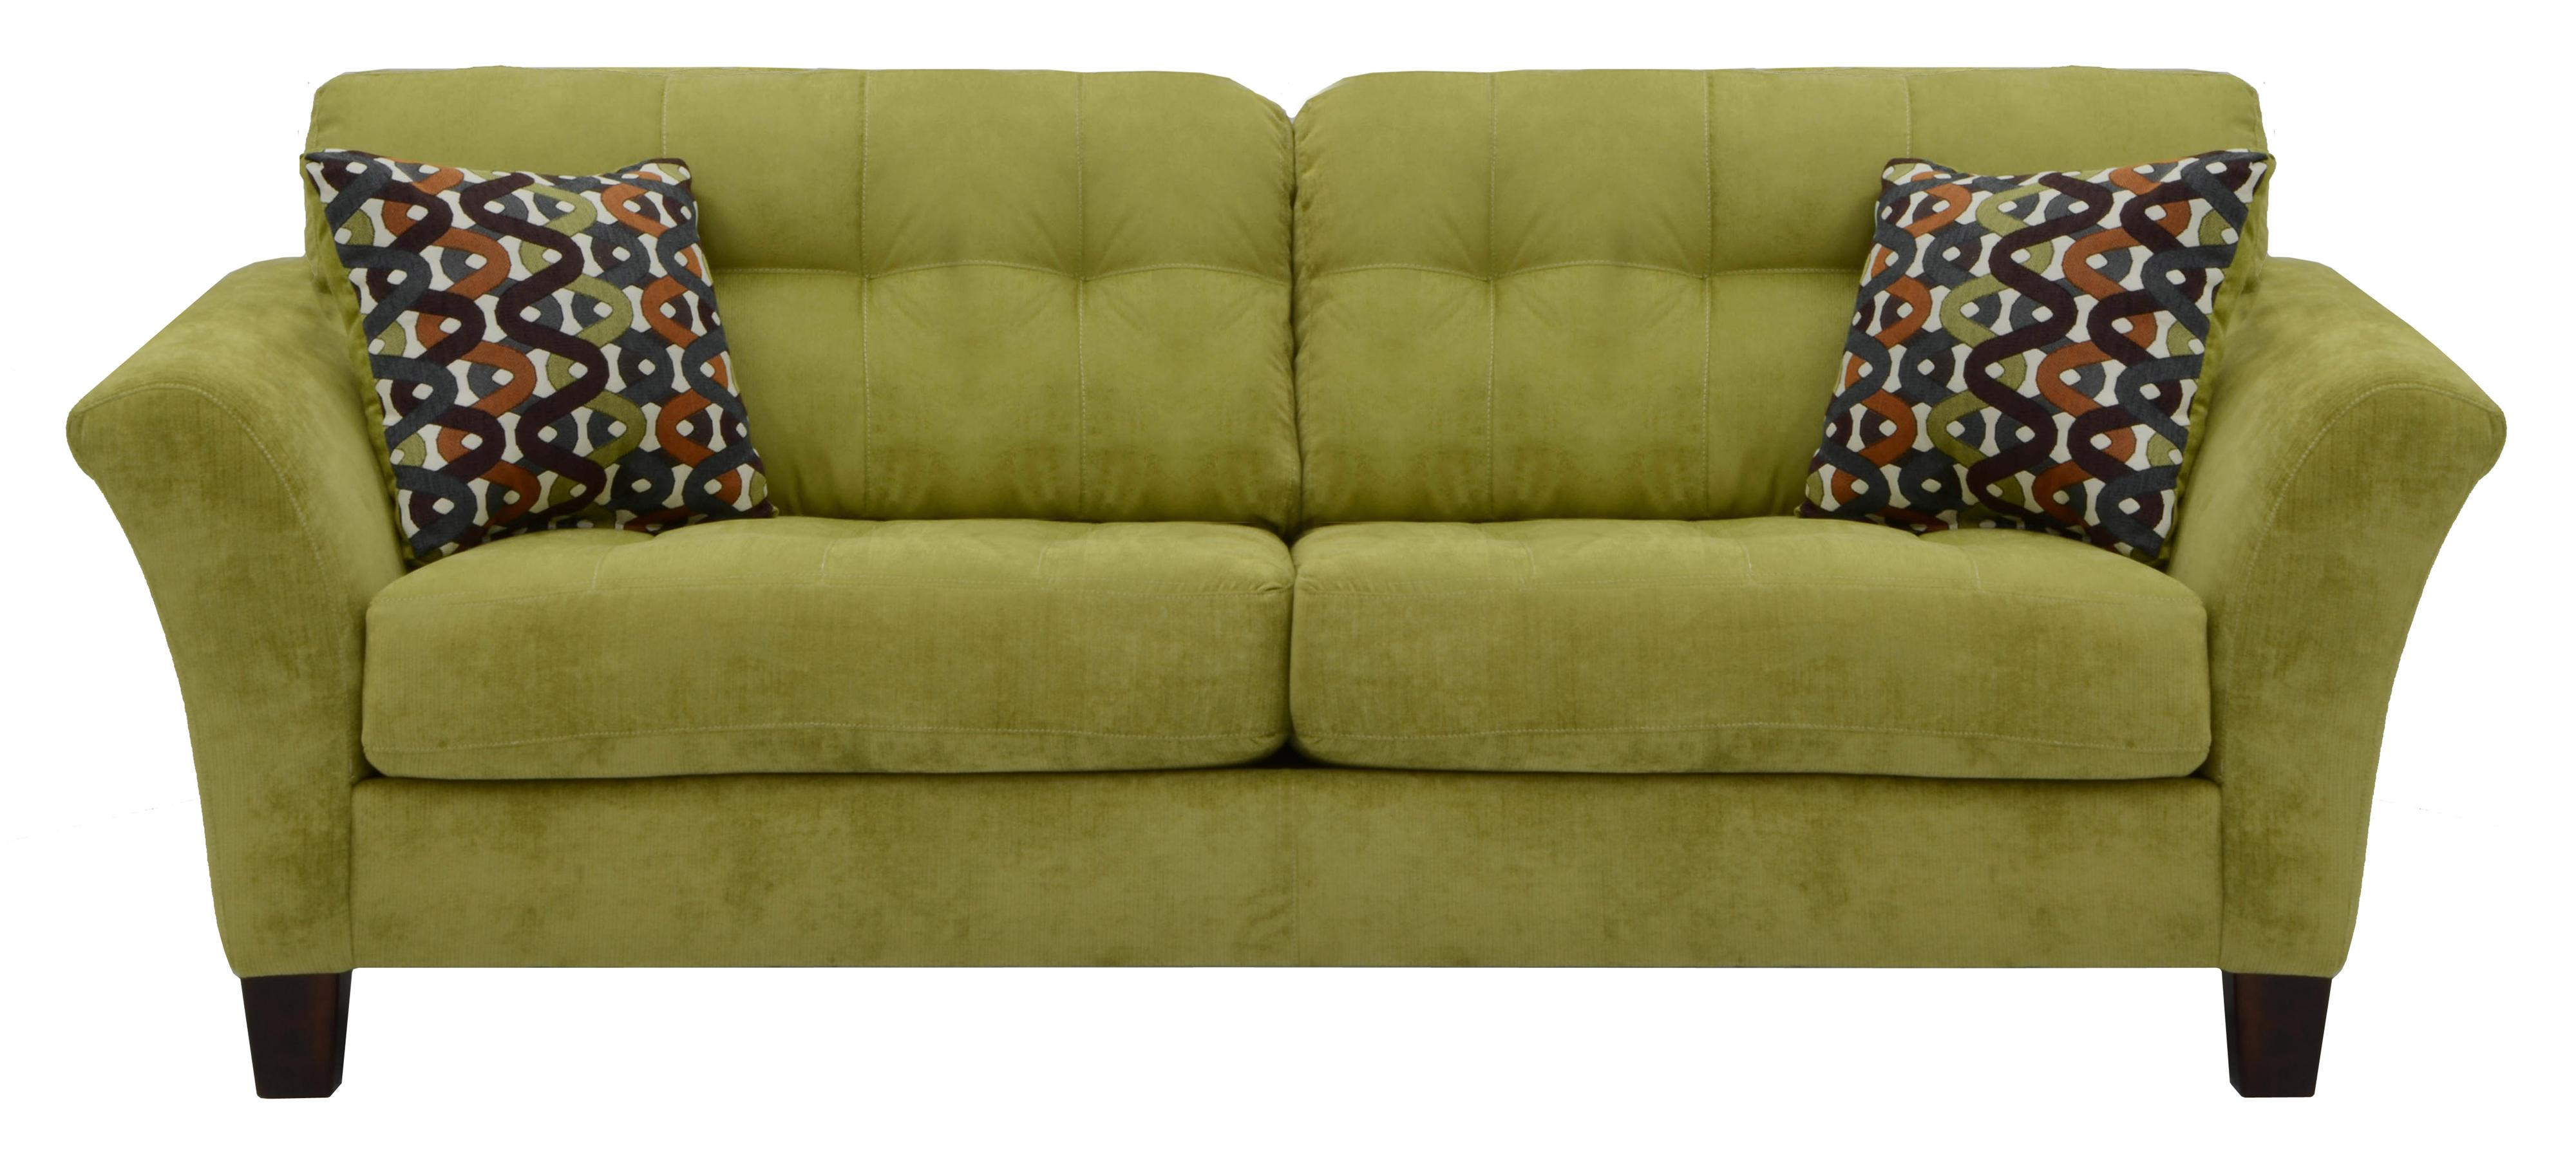 Sofa With 2 Seats And Tufted Back Cushions By Jackson